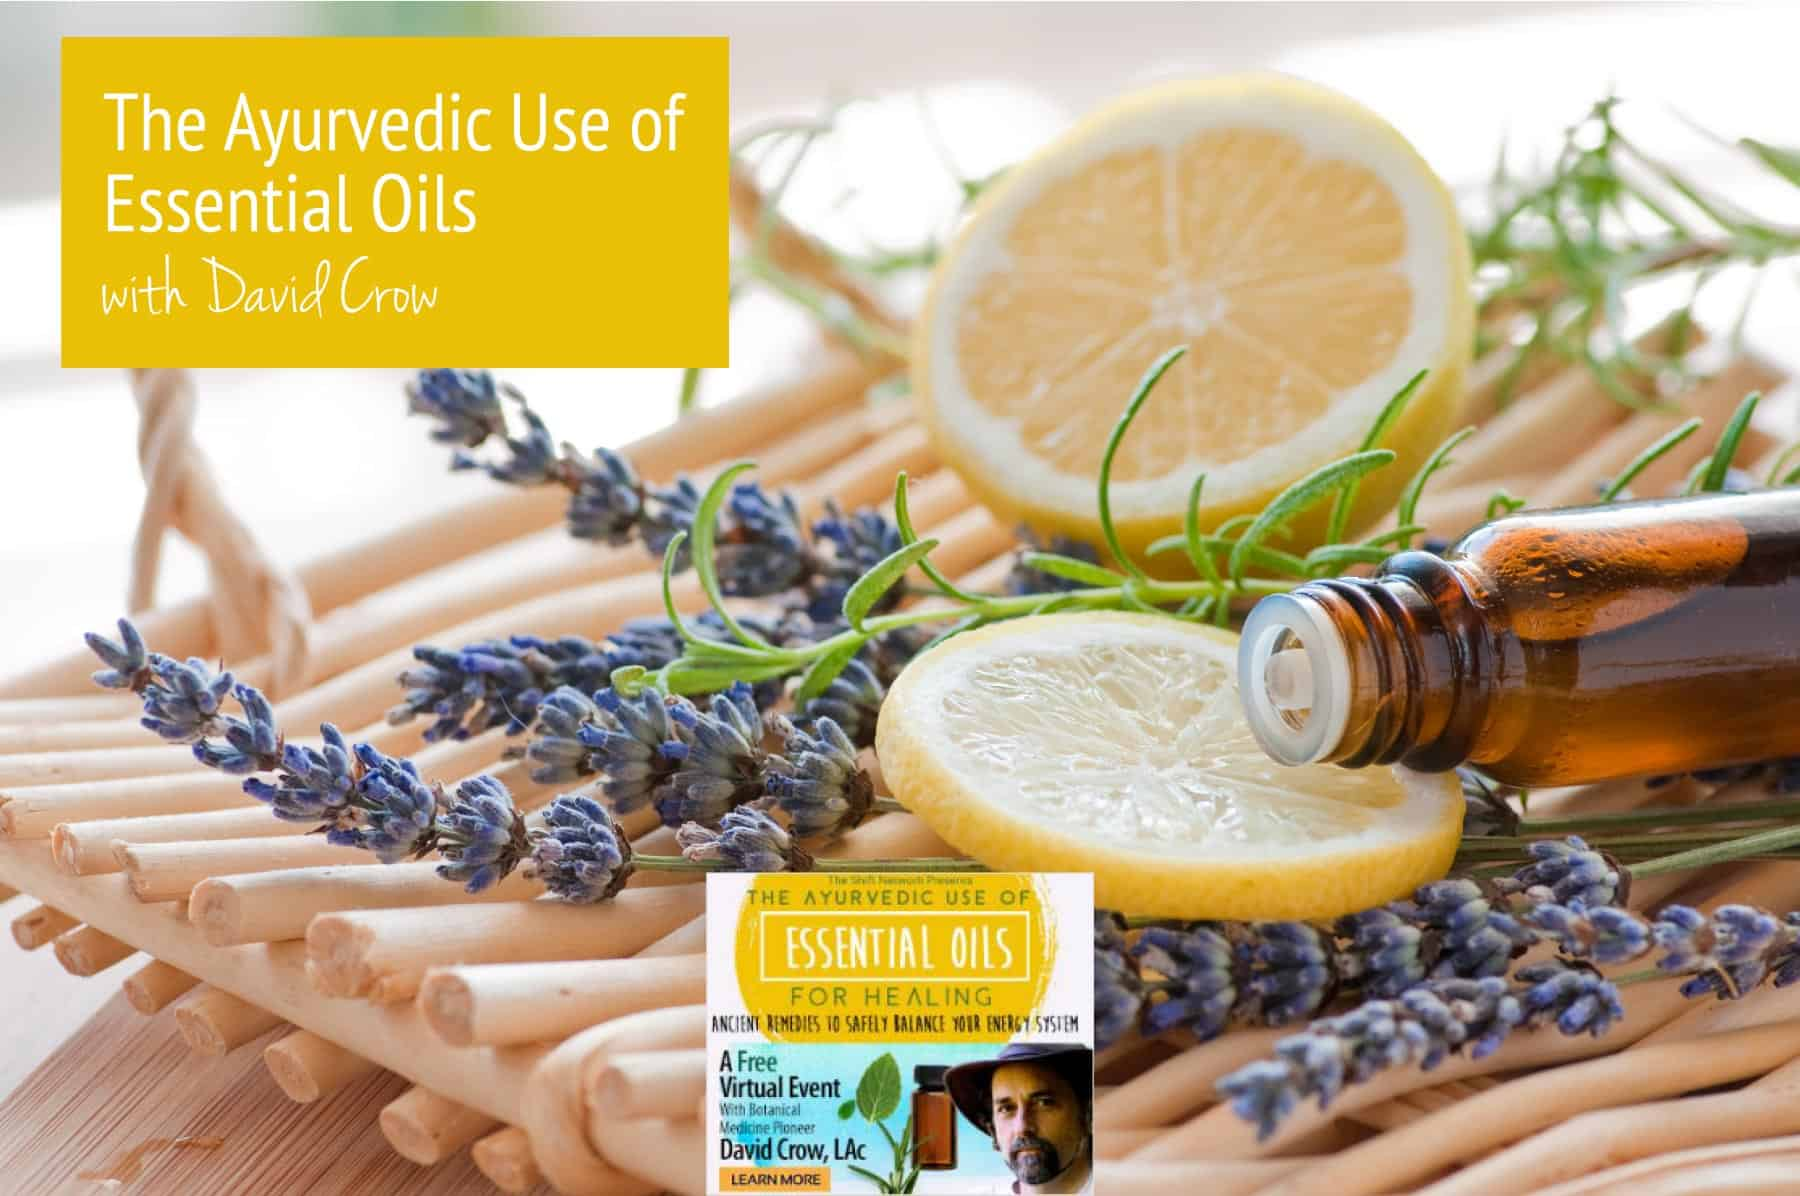 The Ayurvedic Use of Essential Oils Event with David Crow